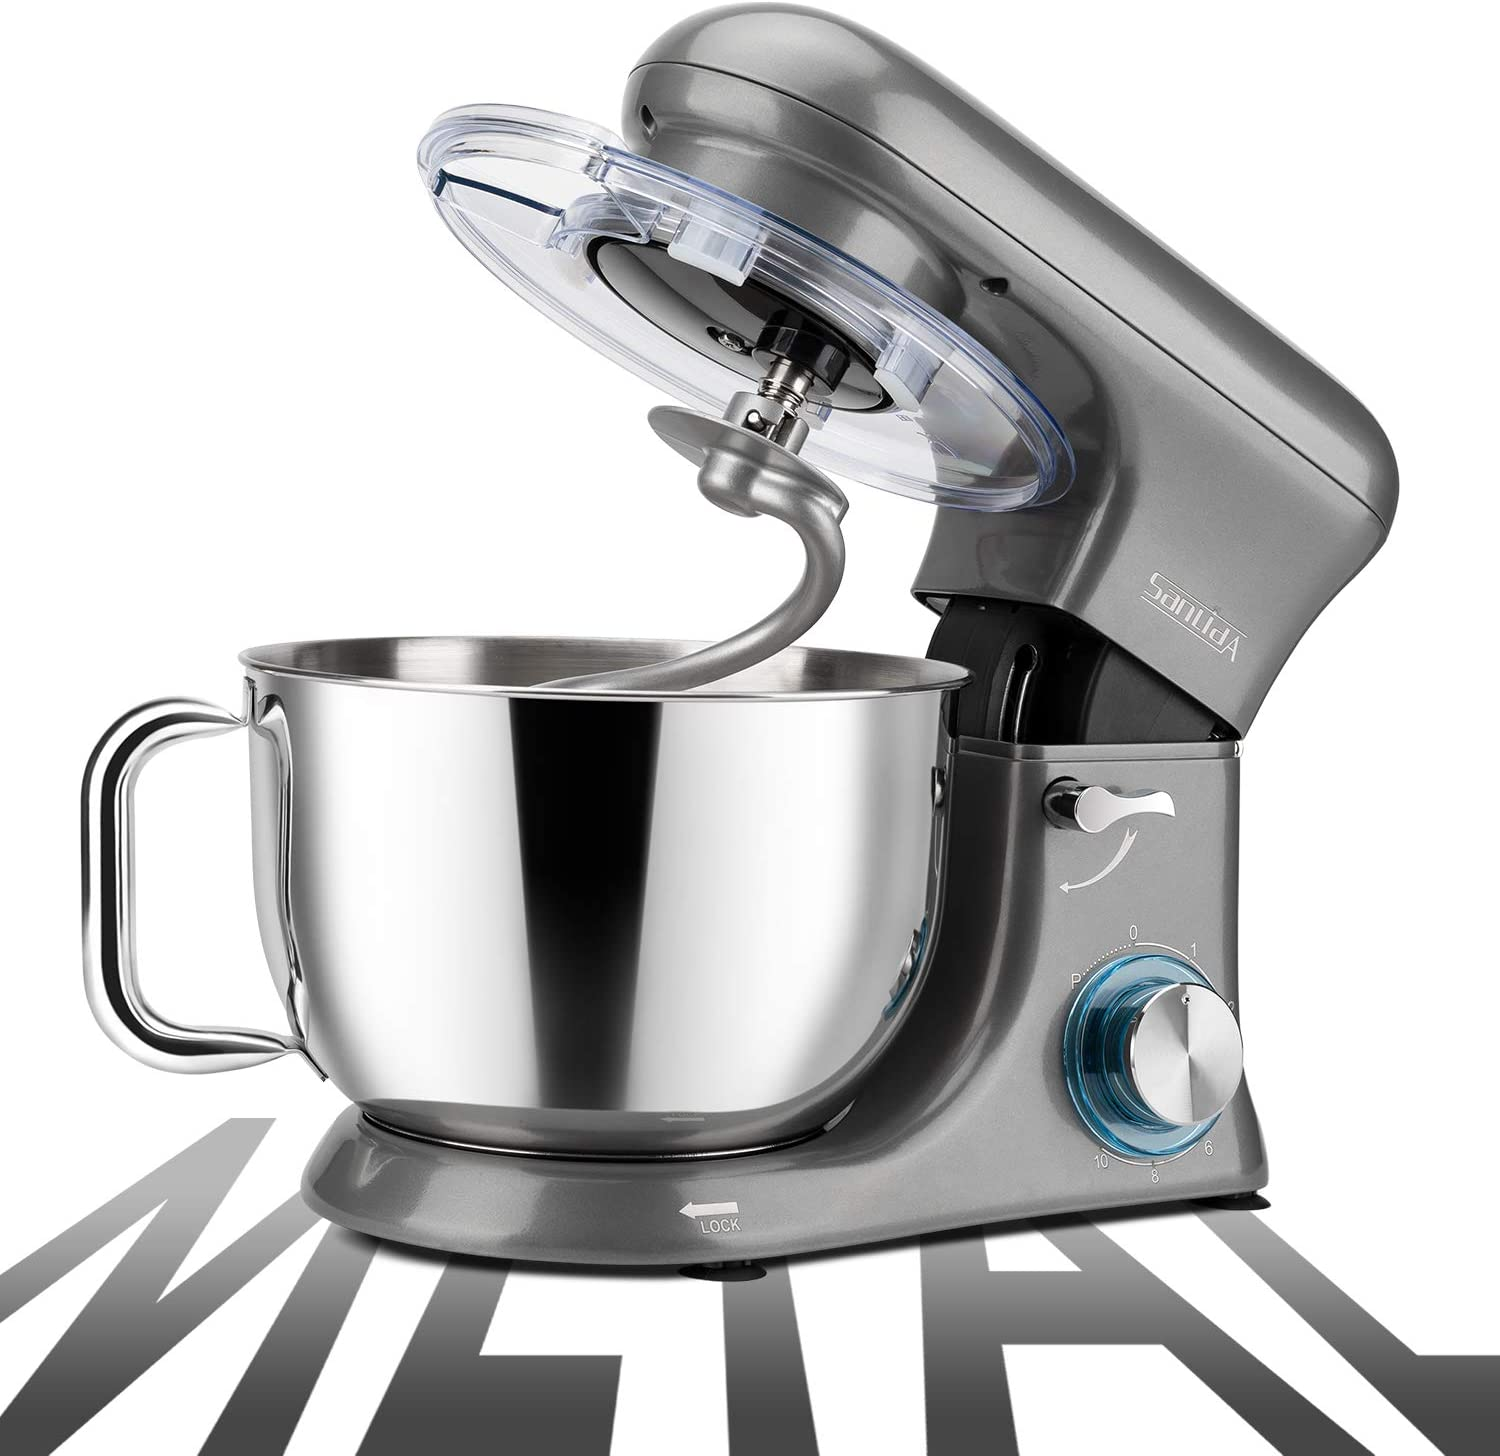 SanLidA All-Metal Stand Mixer, 6.5 Qt. 10-Speed Electric Kitchen Mixer with Dishwasher-Safe Dough Hooks, Flat Beaters, Whisk & Pouring Shield Attachments for Most Home Cooks, 600W, SM-1515, Pearl Grey